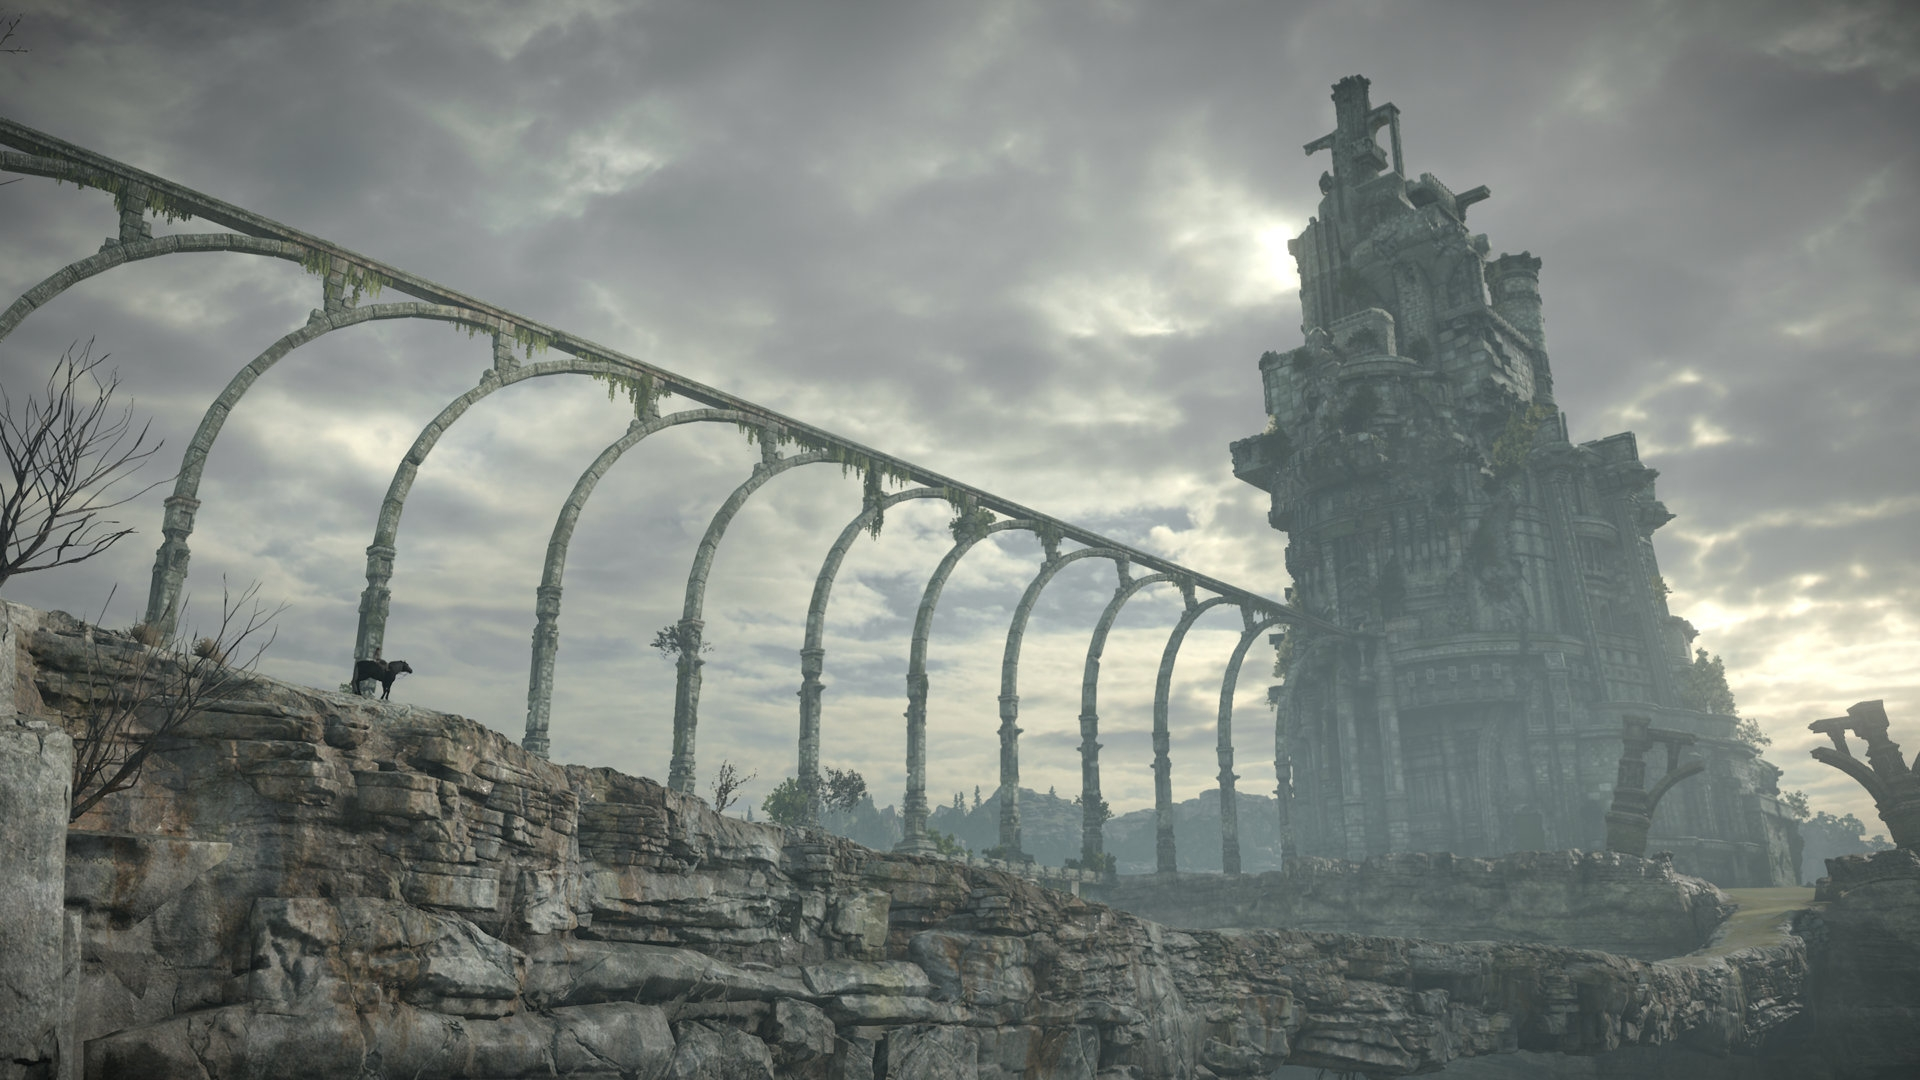 Screenshot vom 2018 erscheinenden Remake von Shadow of the Colossus (Quelle: playstation.com)